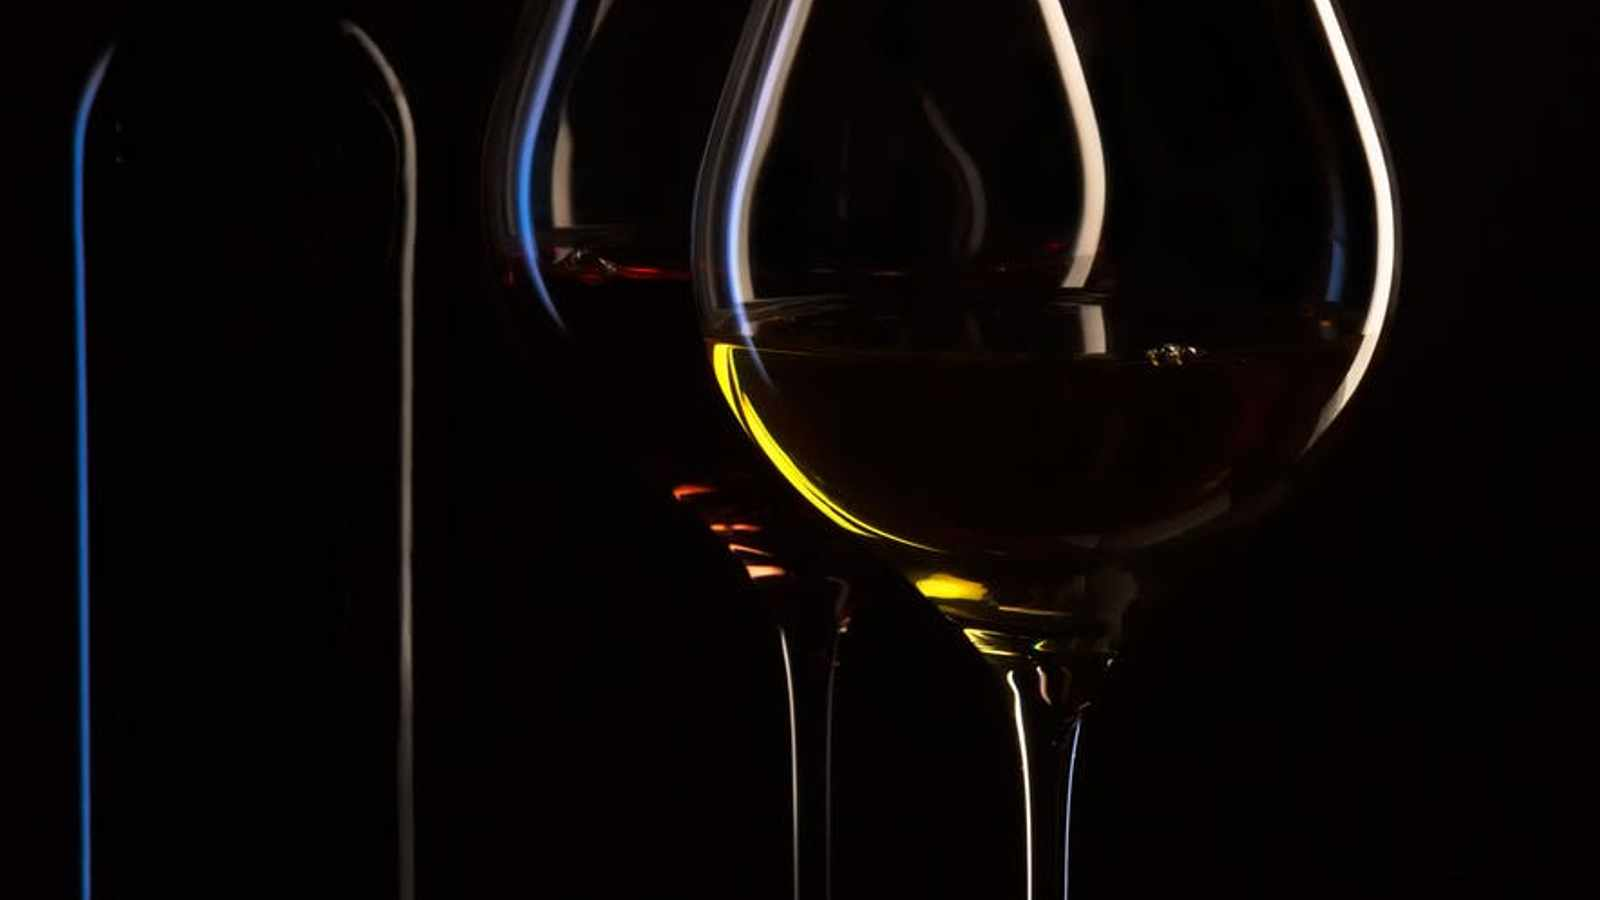 5 wines to savour summer season moments with